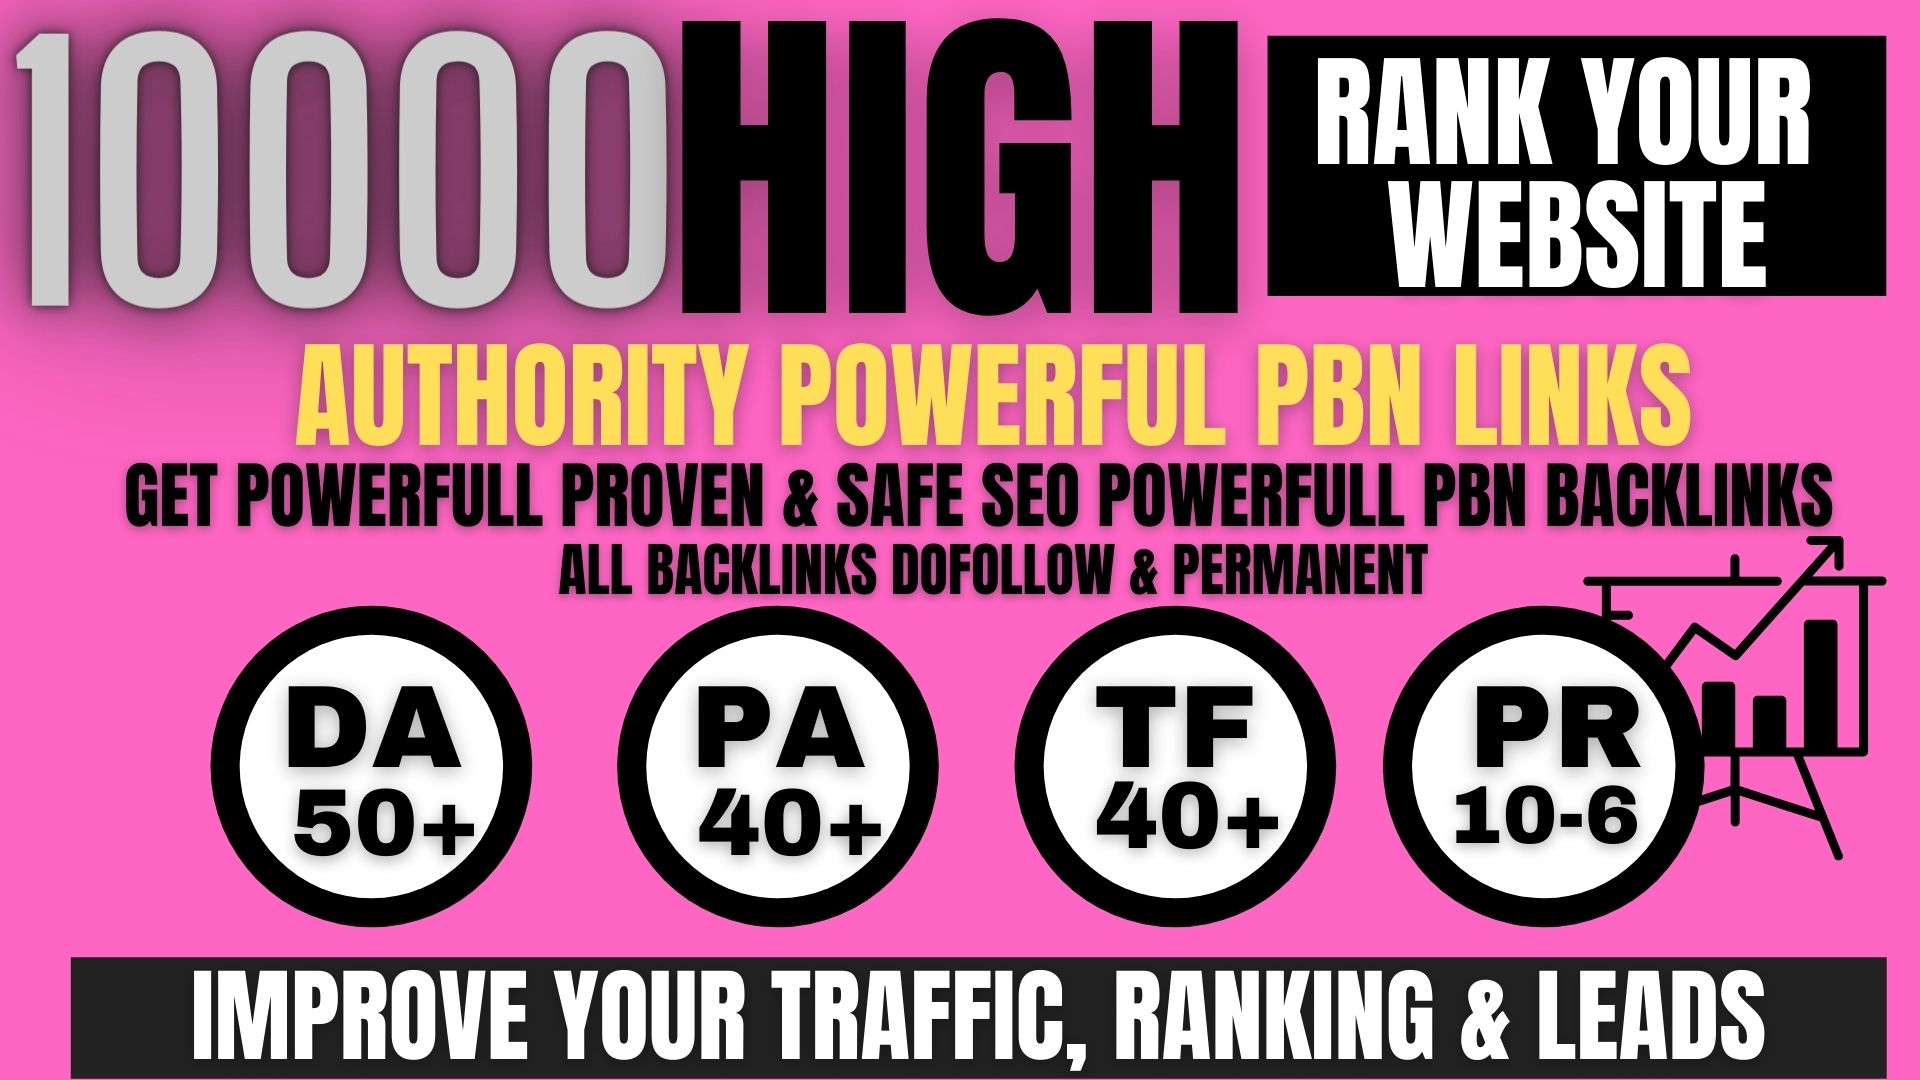 permanent 10000+ Pbn Backlink DA40+PA40+PR6+homepage web 2.0 google 1st page ranking